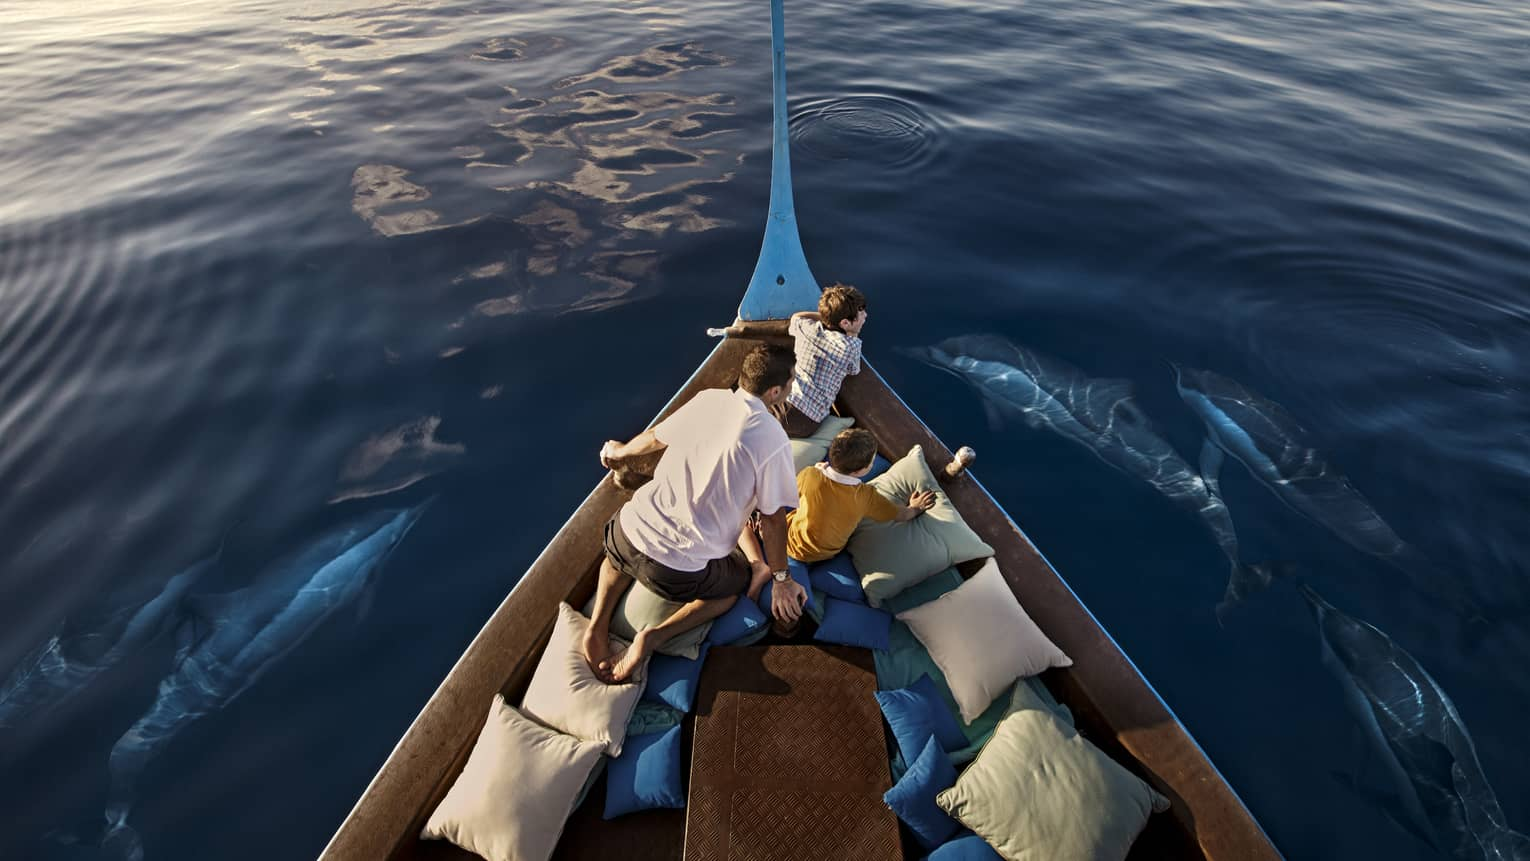 A man and two boys sit in a boat lined with blue and white pillows as dolphins swim around them